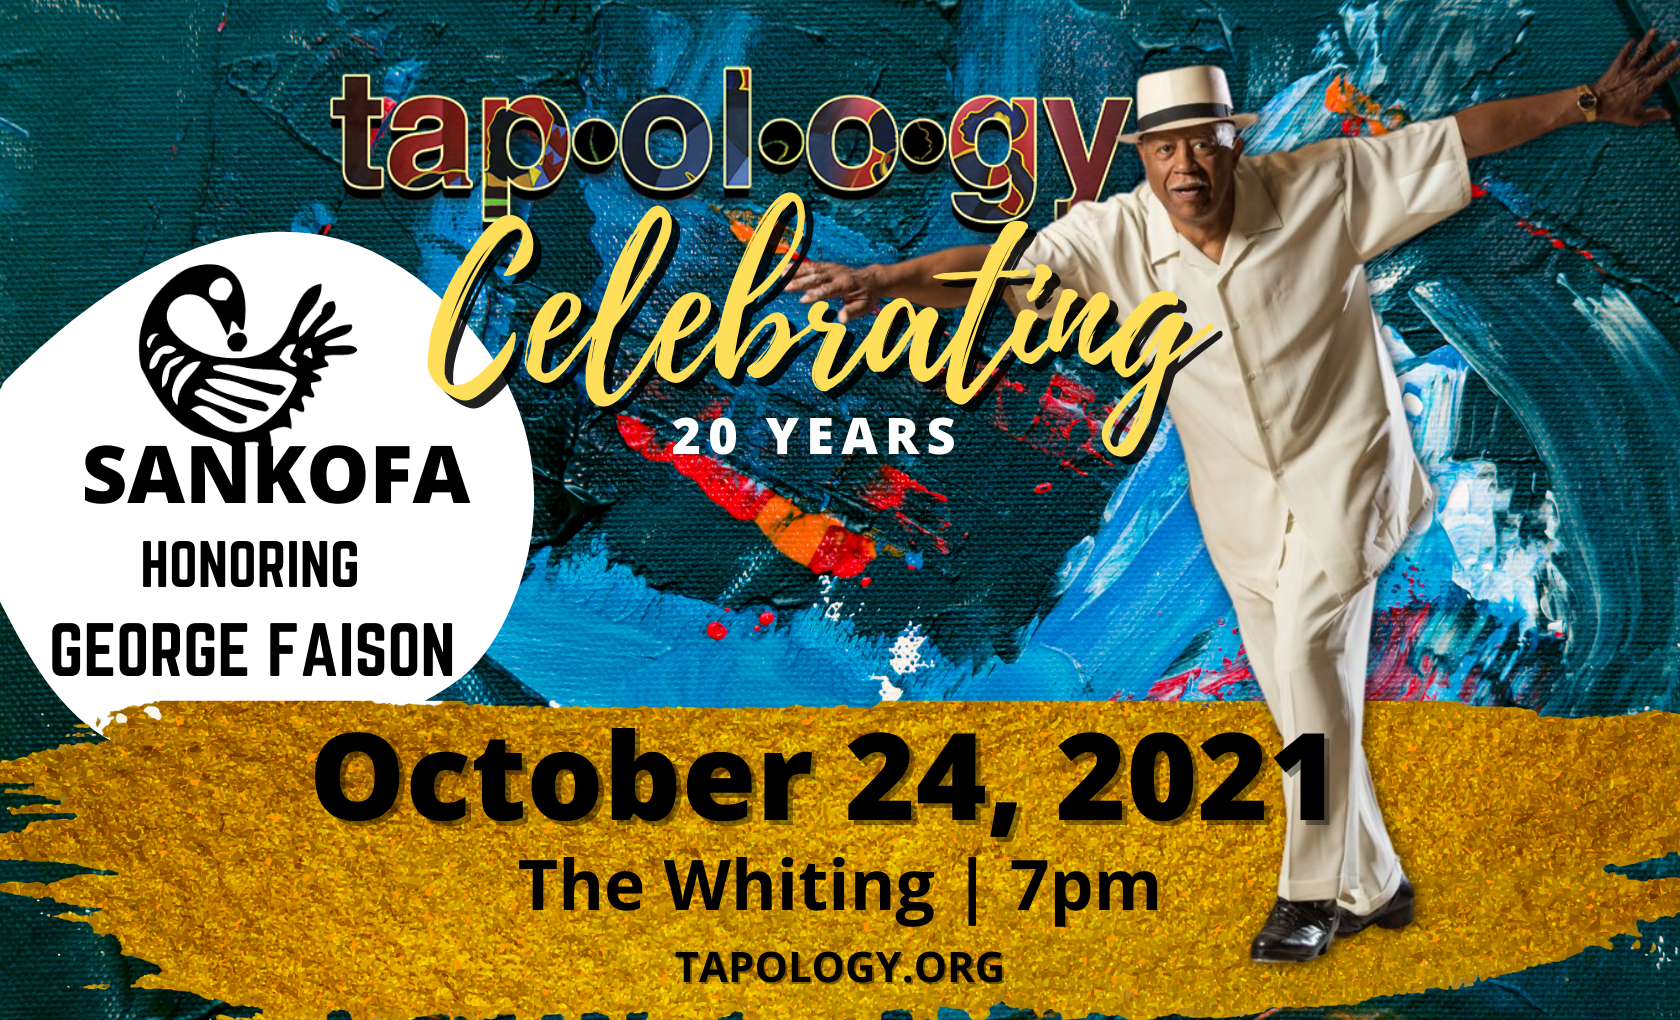 More Info for Tapology Celebrating 20 Years, Sankofa honoring George Faison